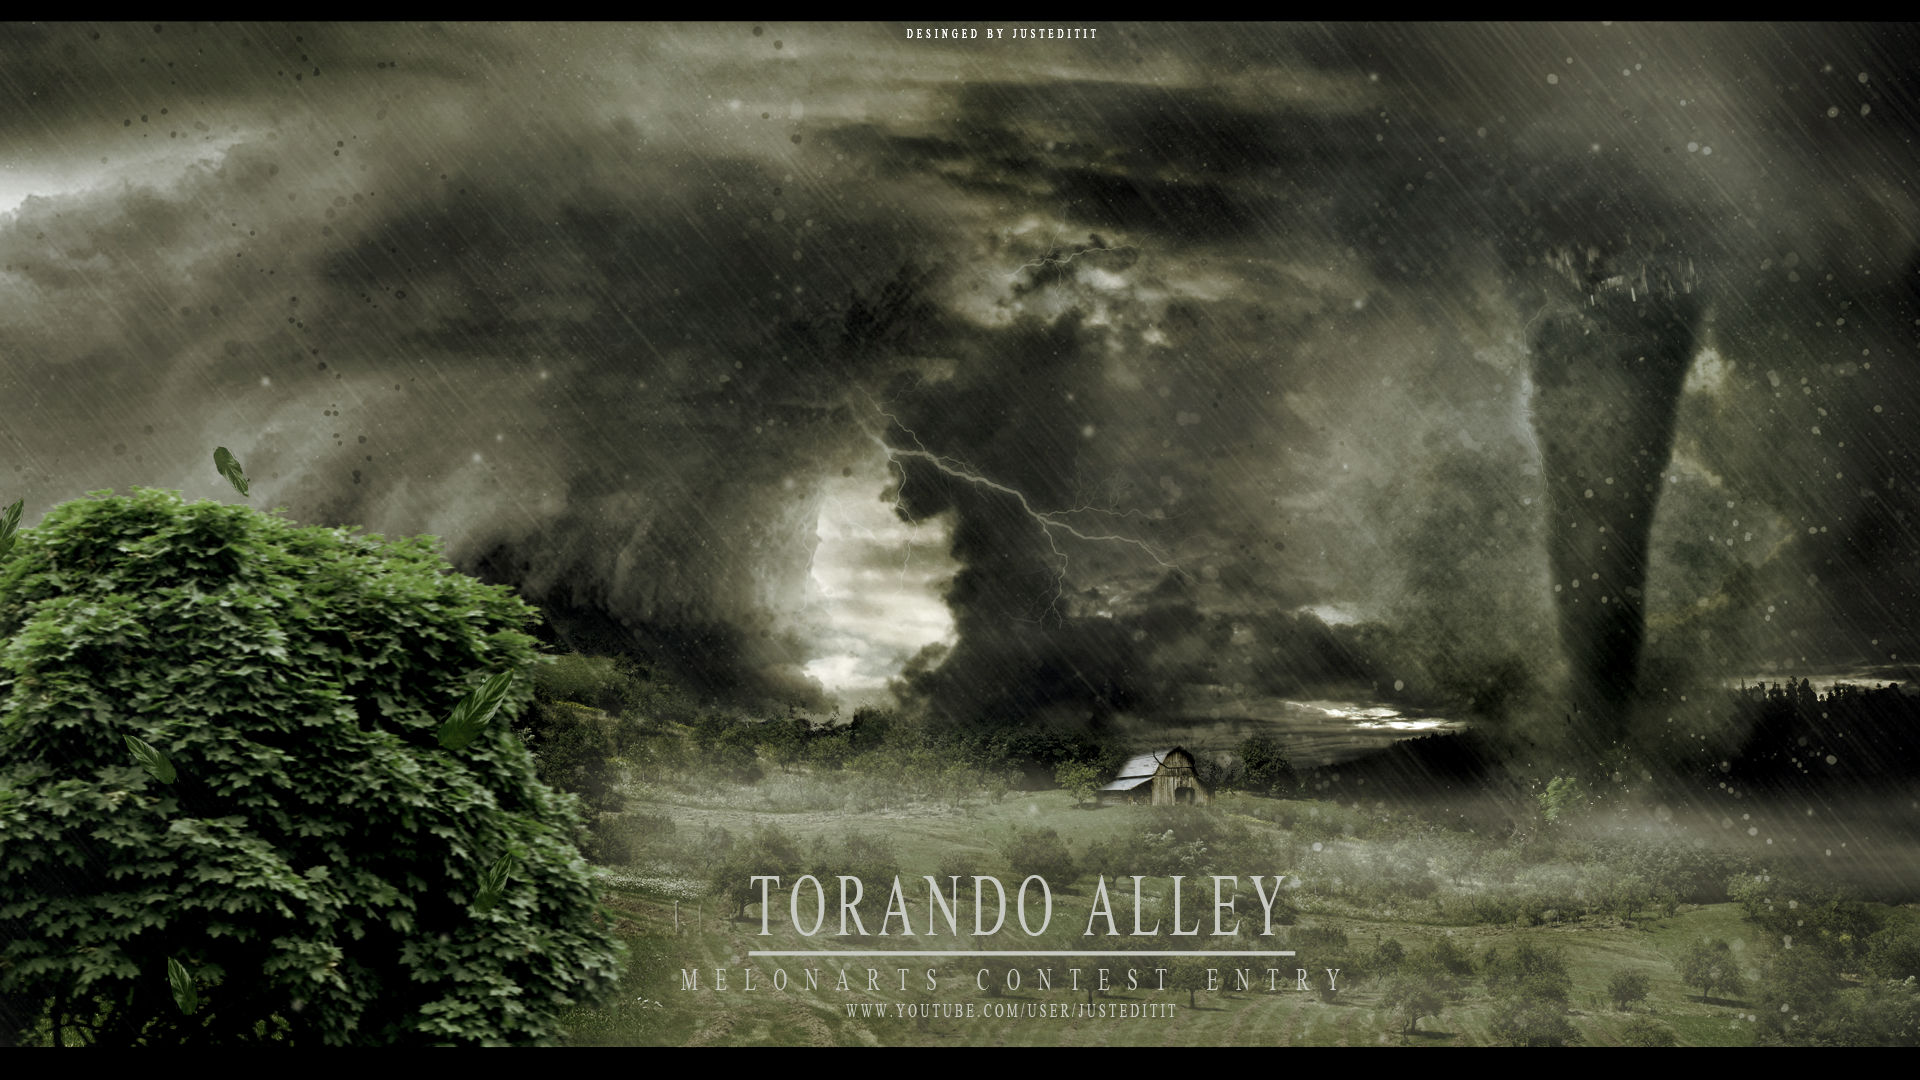 Tornado alley by JustEdit on DeviantArt